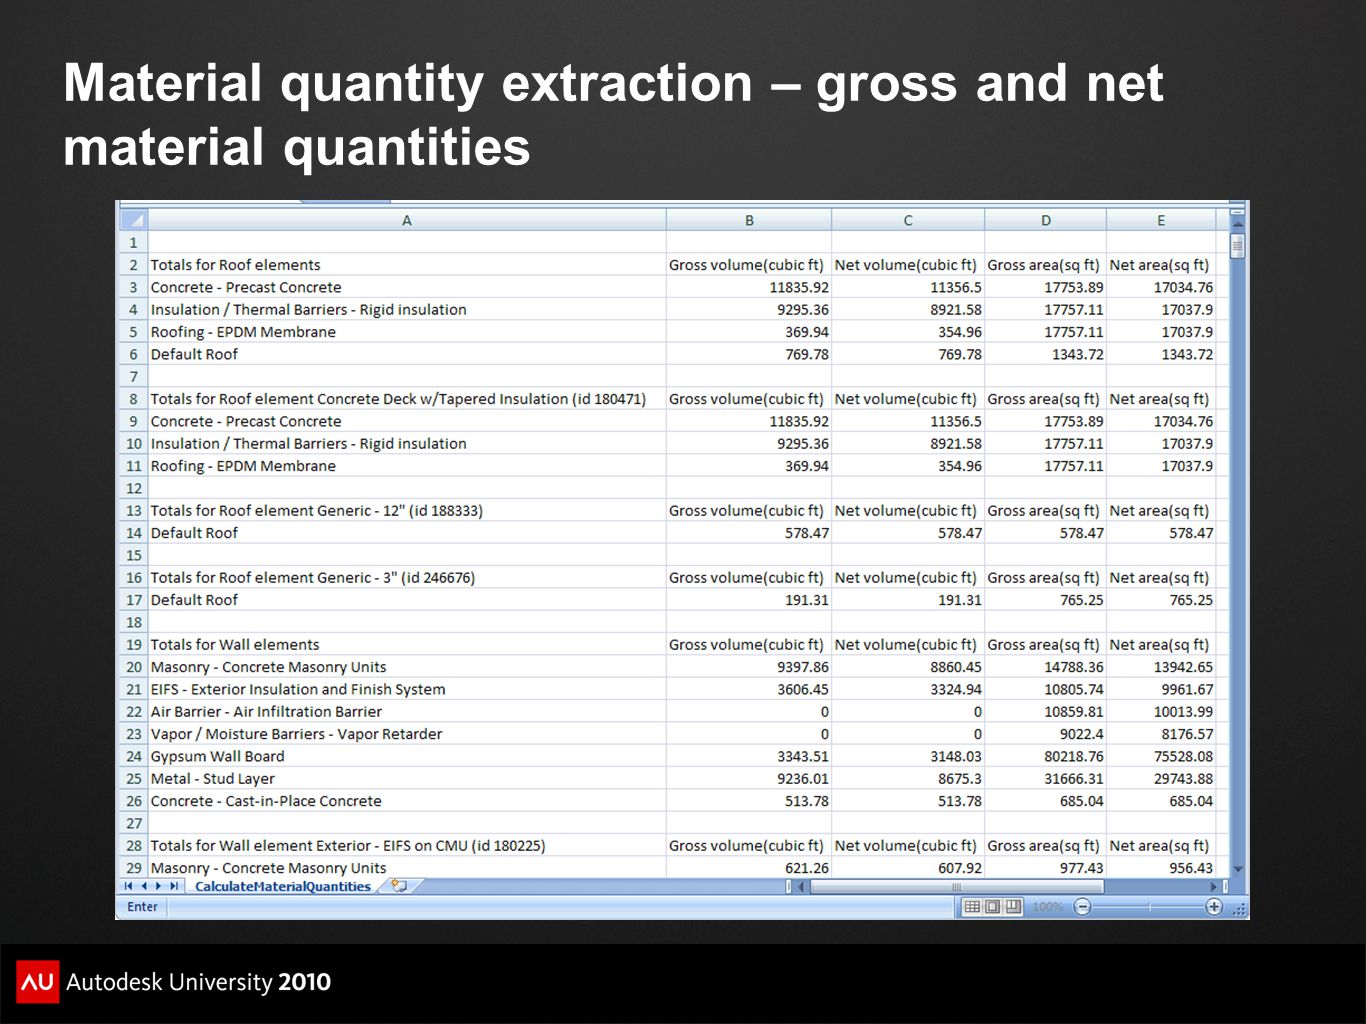 Material quantity extraction – gross and net material quantities